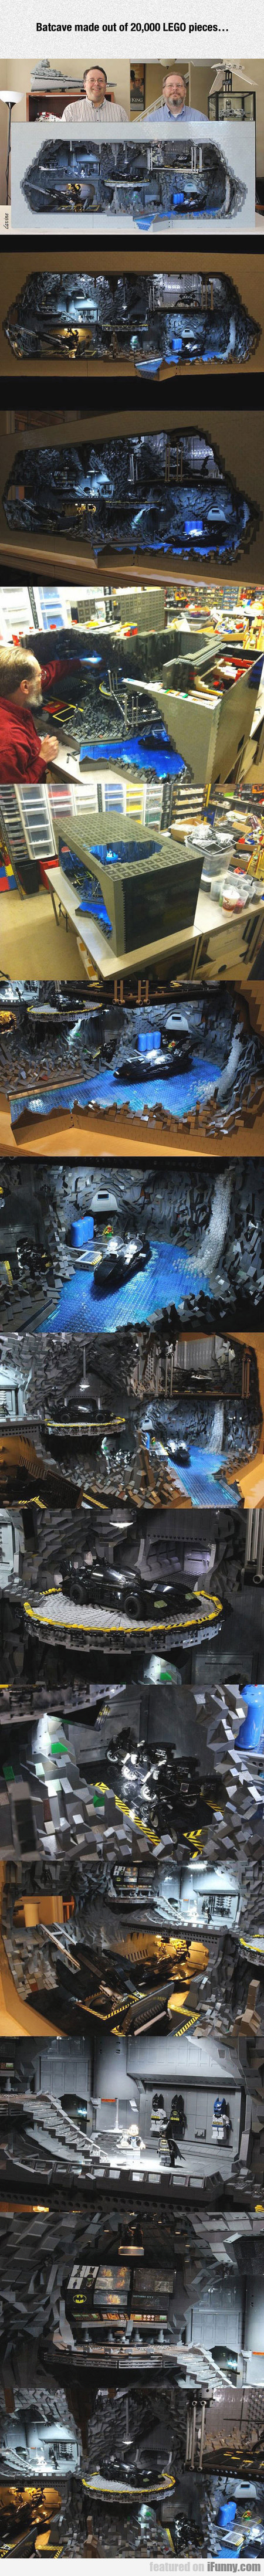 Batcave Made Out Of 20,000 Lego Pieces...